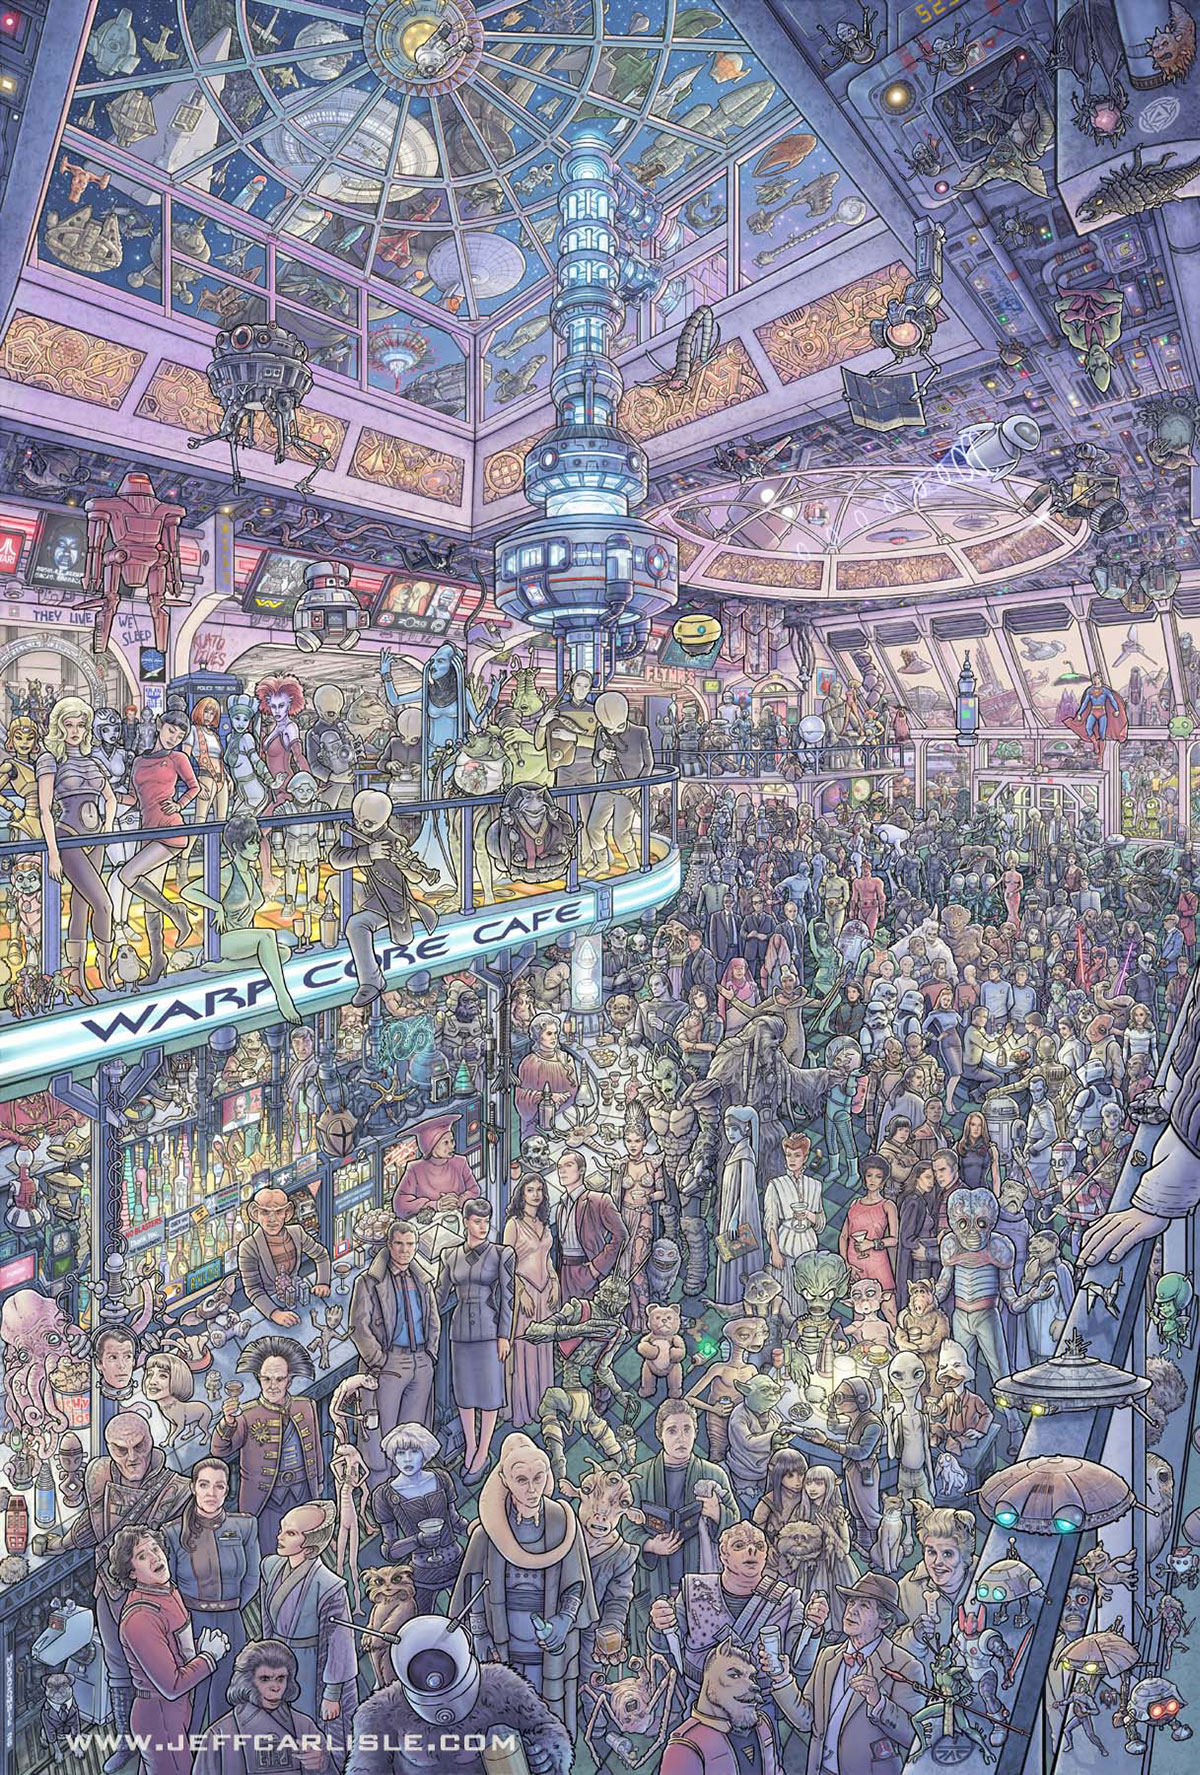 Another Night at the Warp Core Cafe, disegnato da Jeff Carlisle